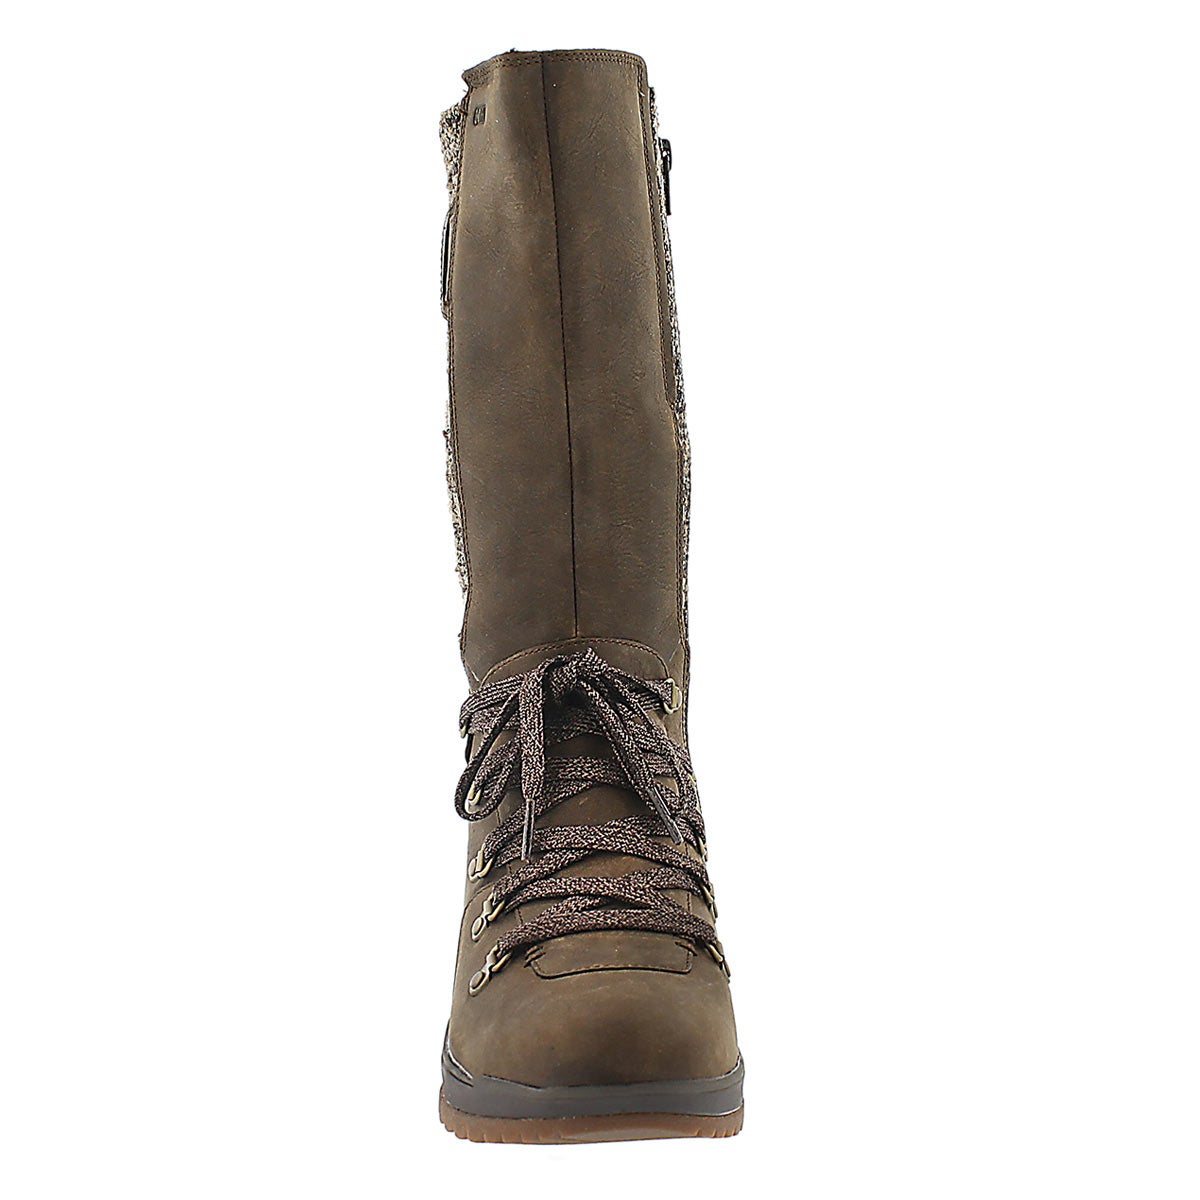 Lds Eventyr Peak brn wtrpf casual boot